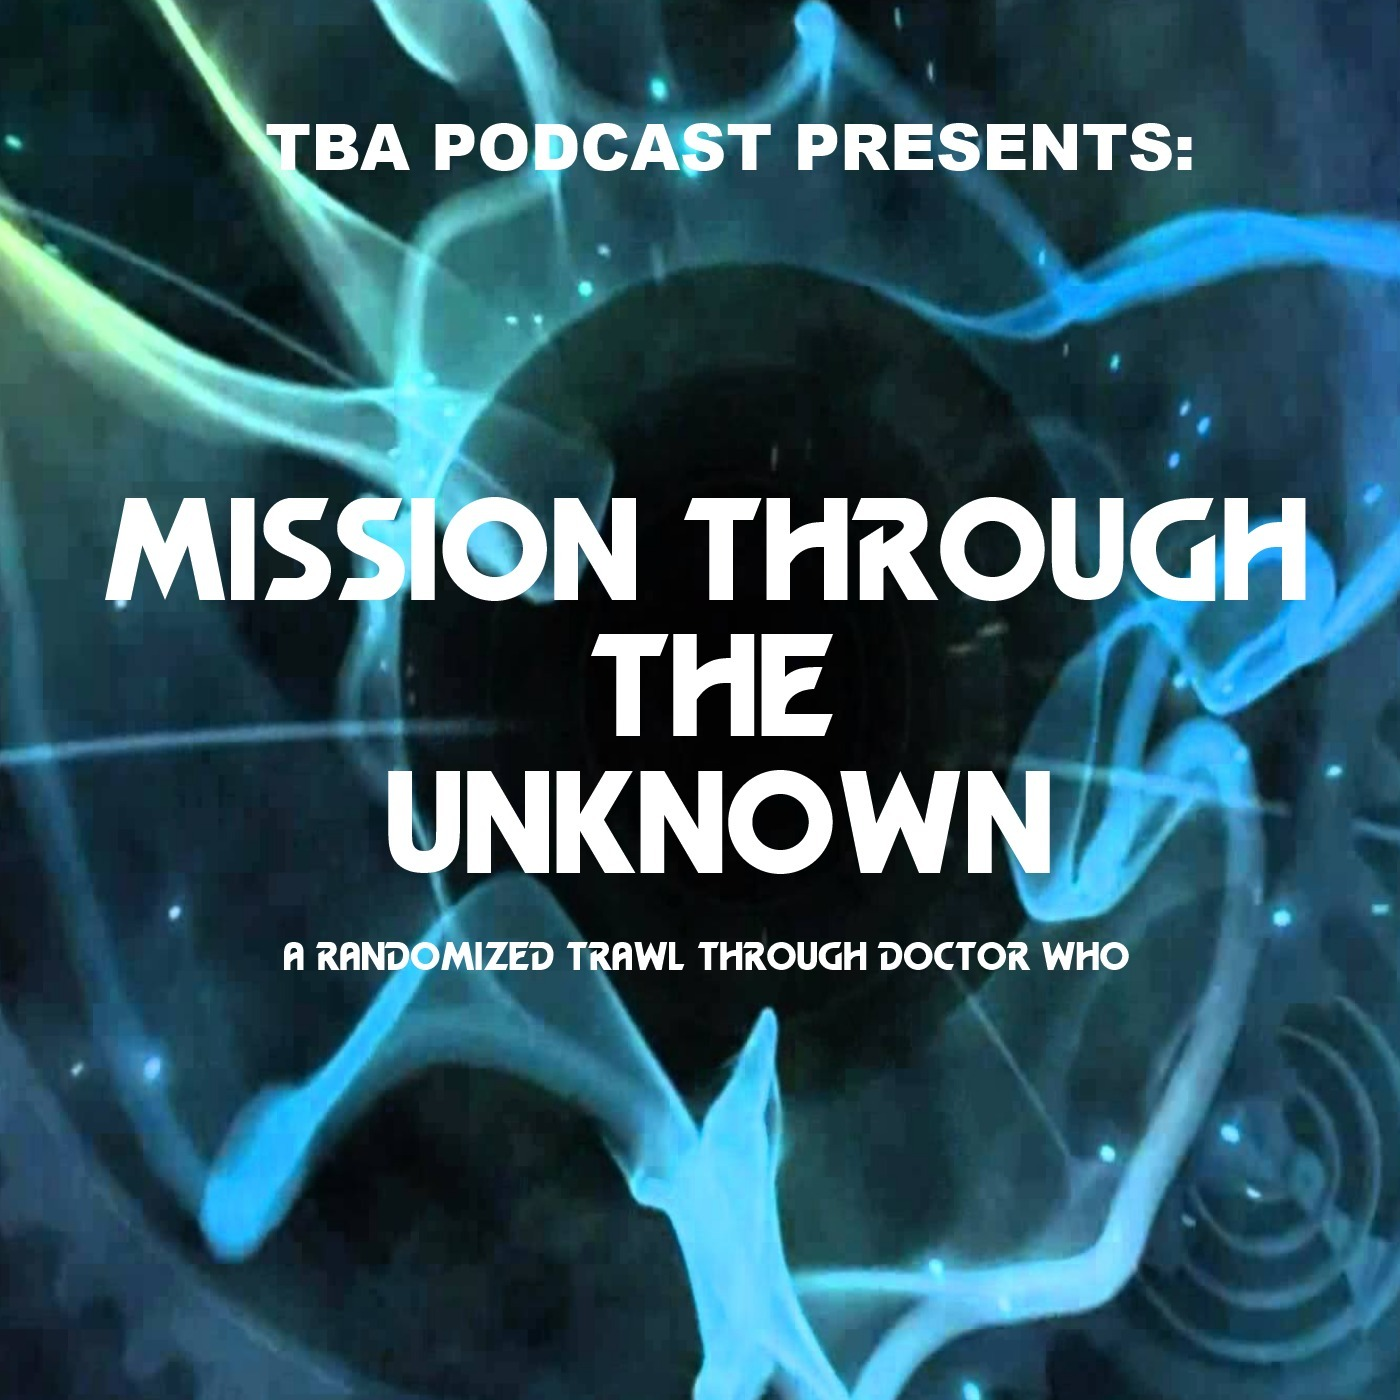 Mission Through the Unknown